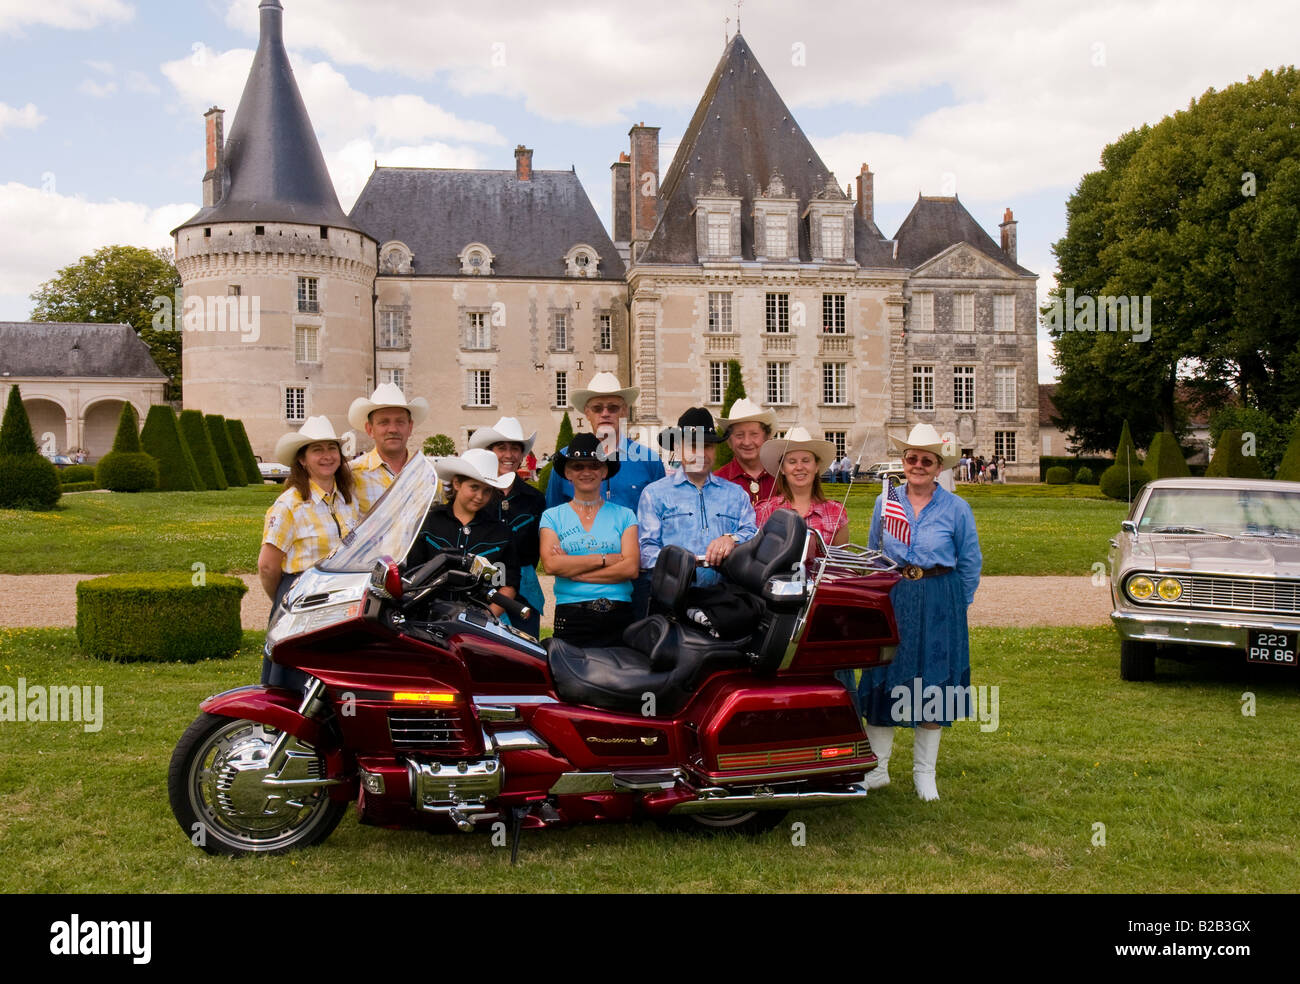 Honda Gold Wing Motorbike With Group Of Enthusiasts At American Car Show In The Park Chateau Azay Le Ferron Indre France